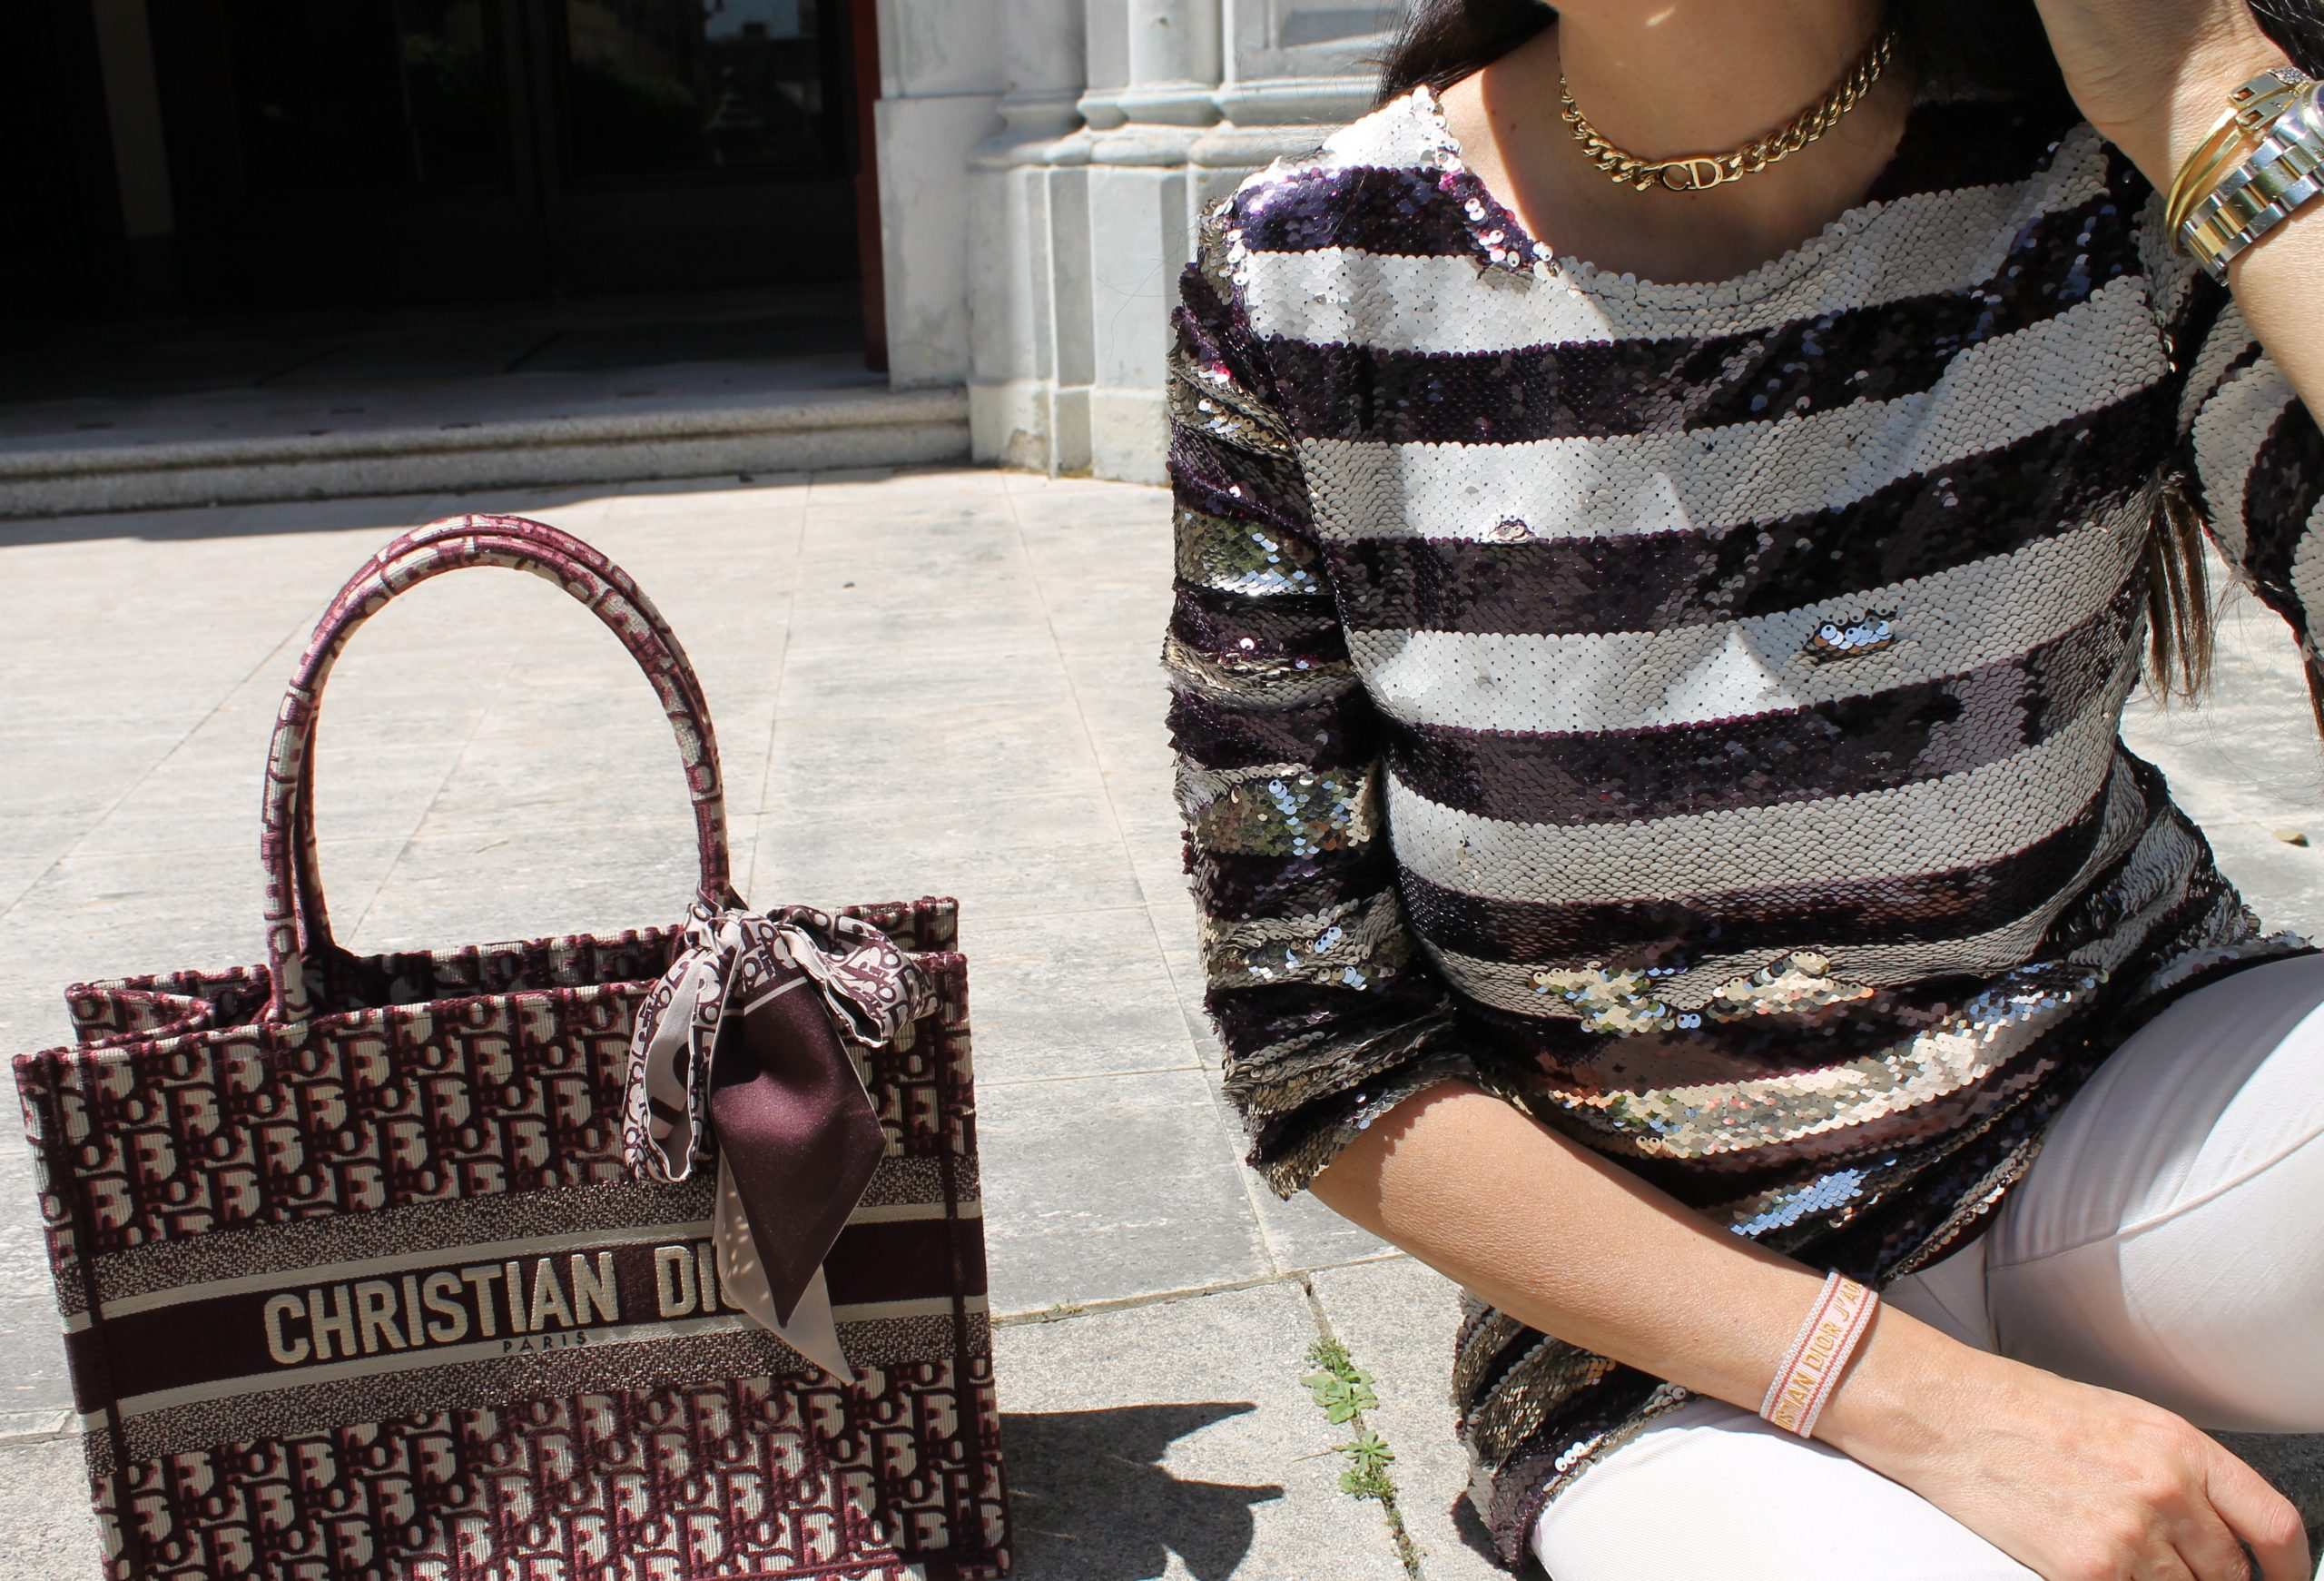 Travel Look Comfy and Chic Outfit Spring Idea Dior Bag Rome Paola Lauretano